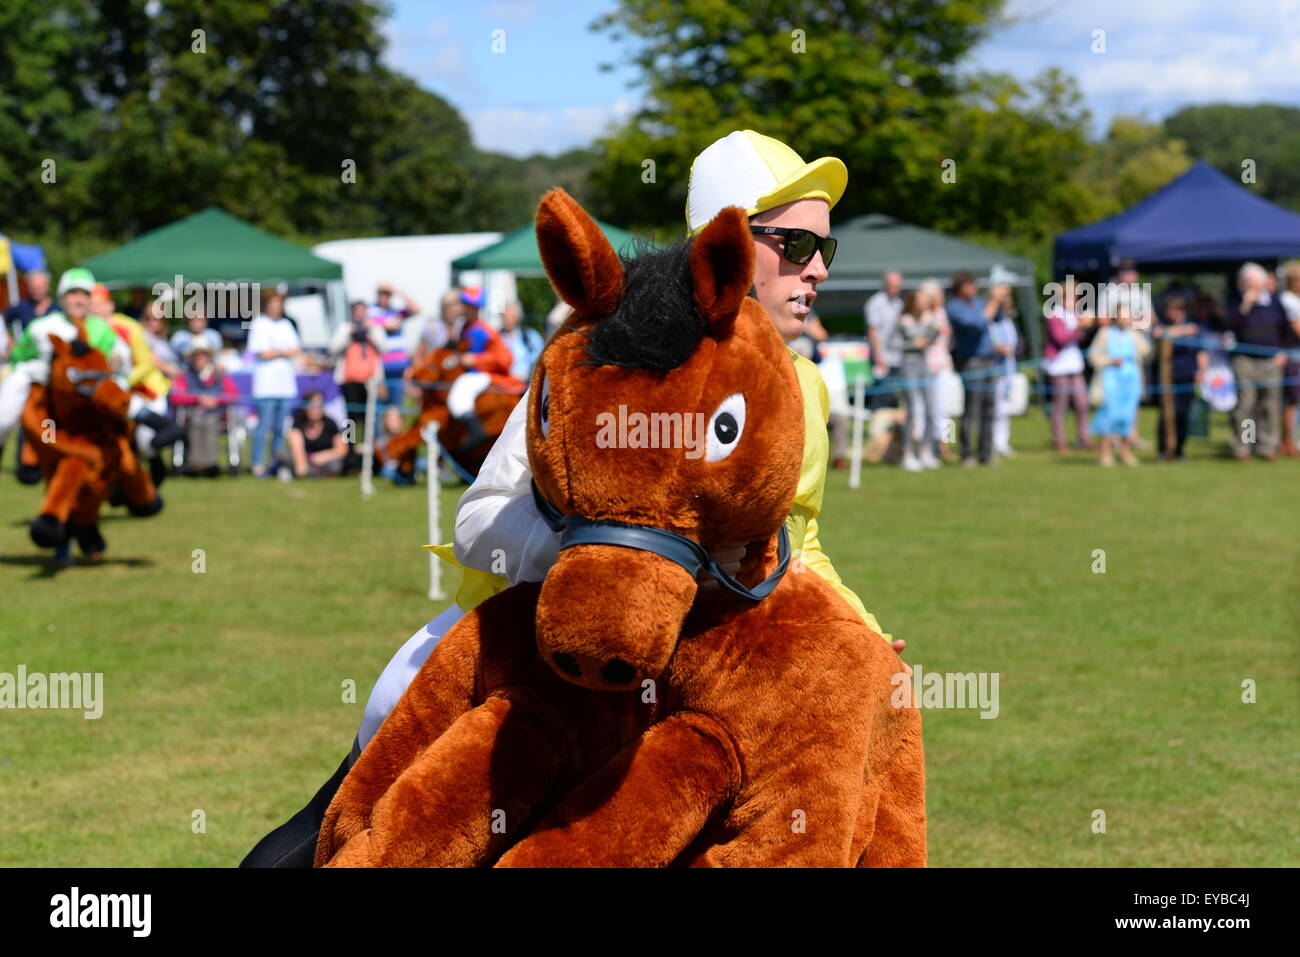 Hampshire, UK. 25th July, 2015. A leading competitor takes a corner in a Damerham Derby 'horse' race at - Stock Image